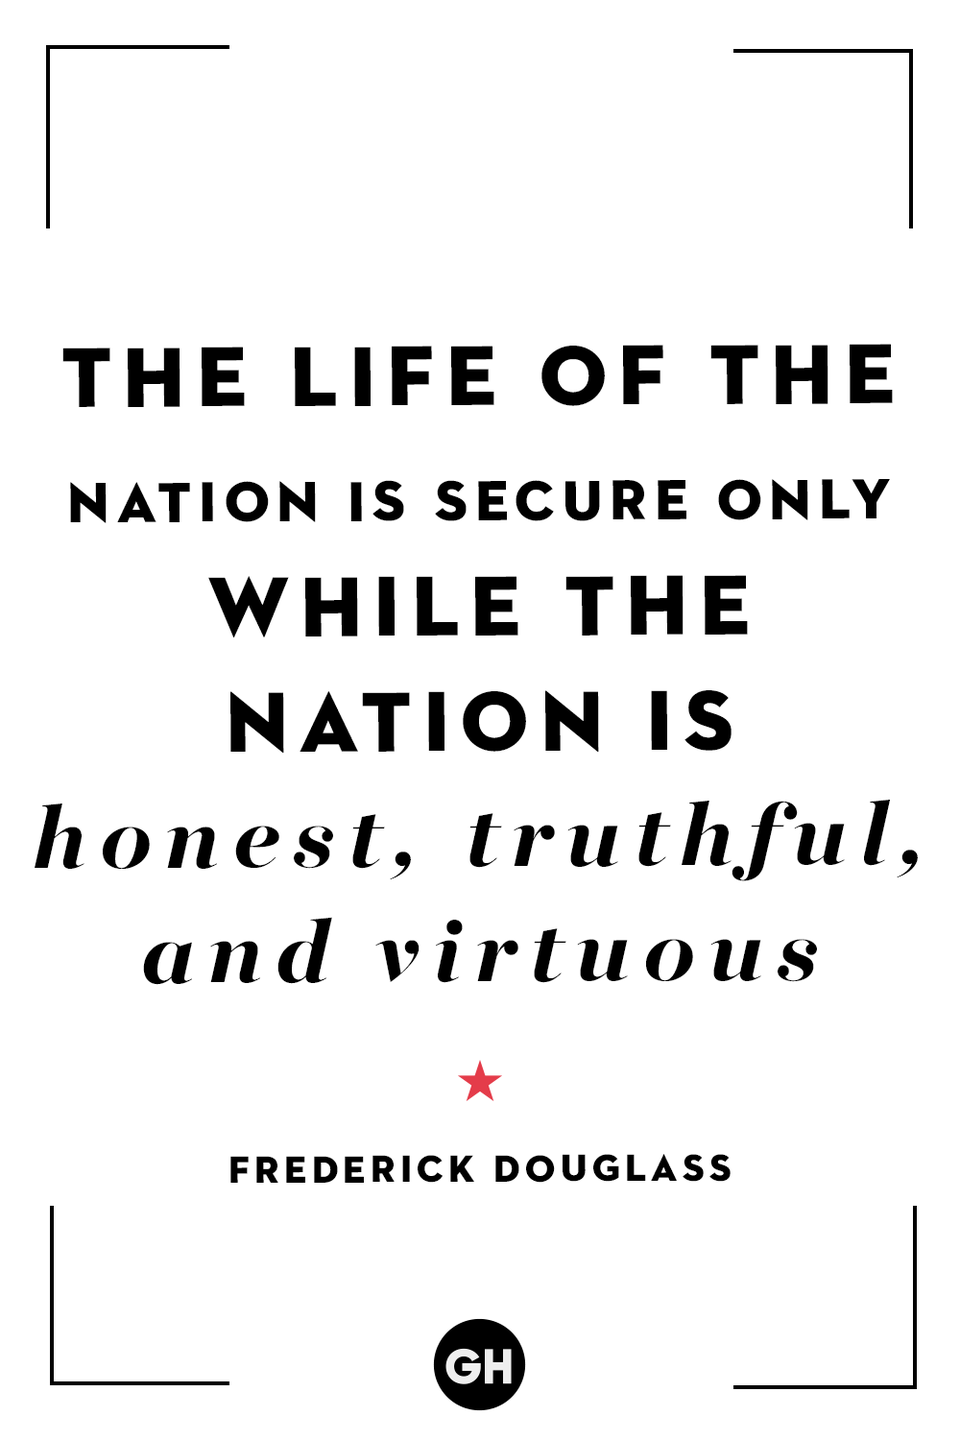 <p>The life of the nation is secure only while the nation is honest, truthful and virtuous.</p>